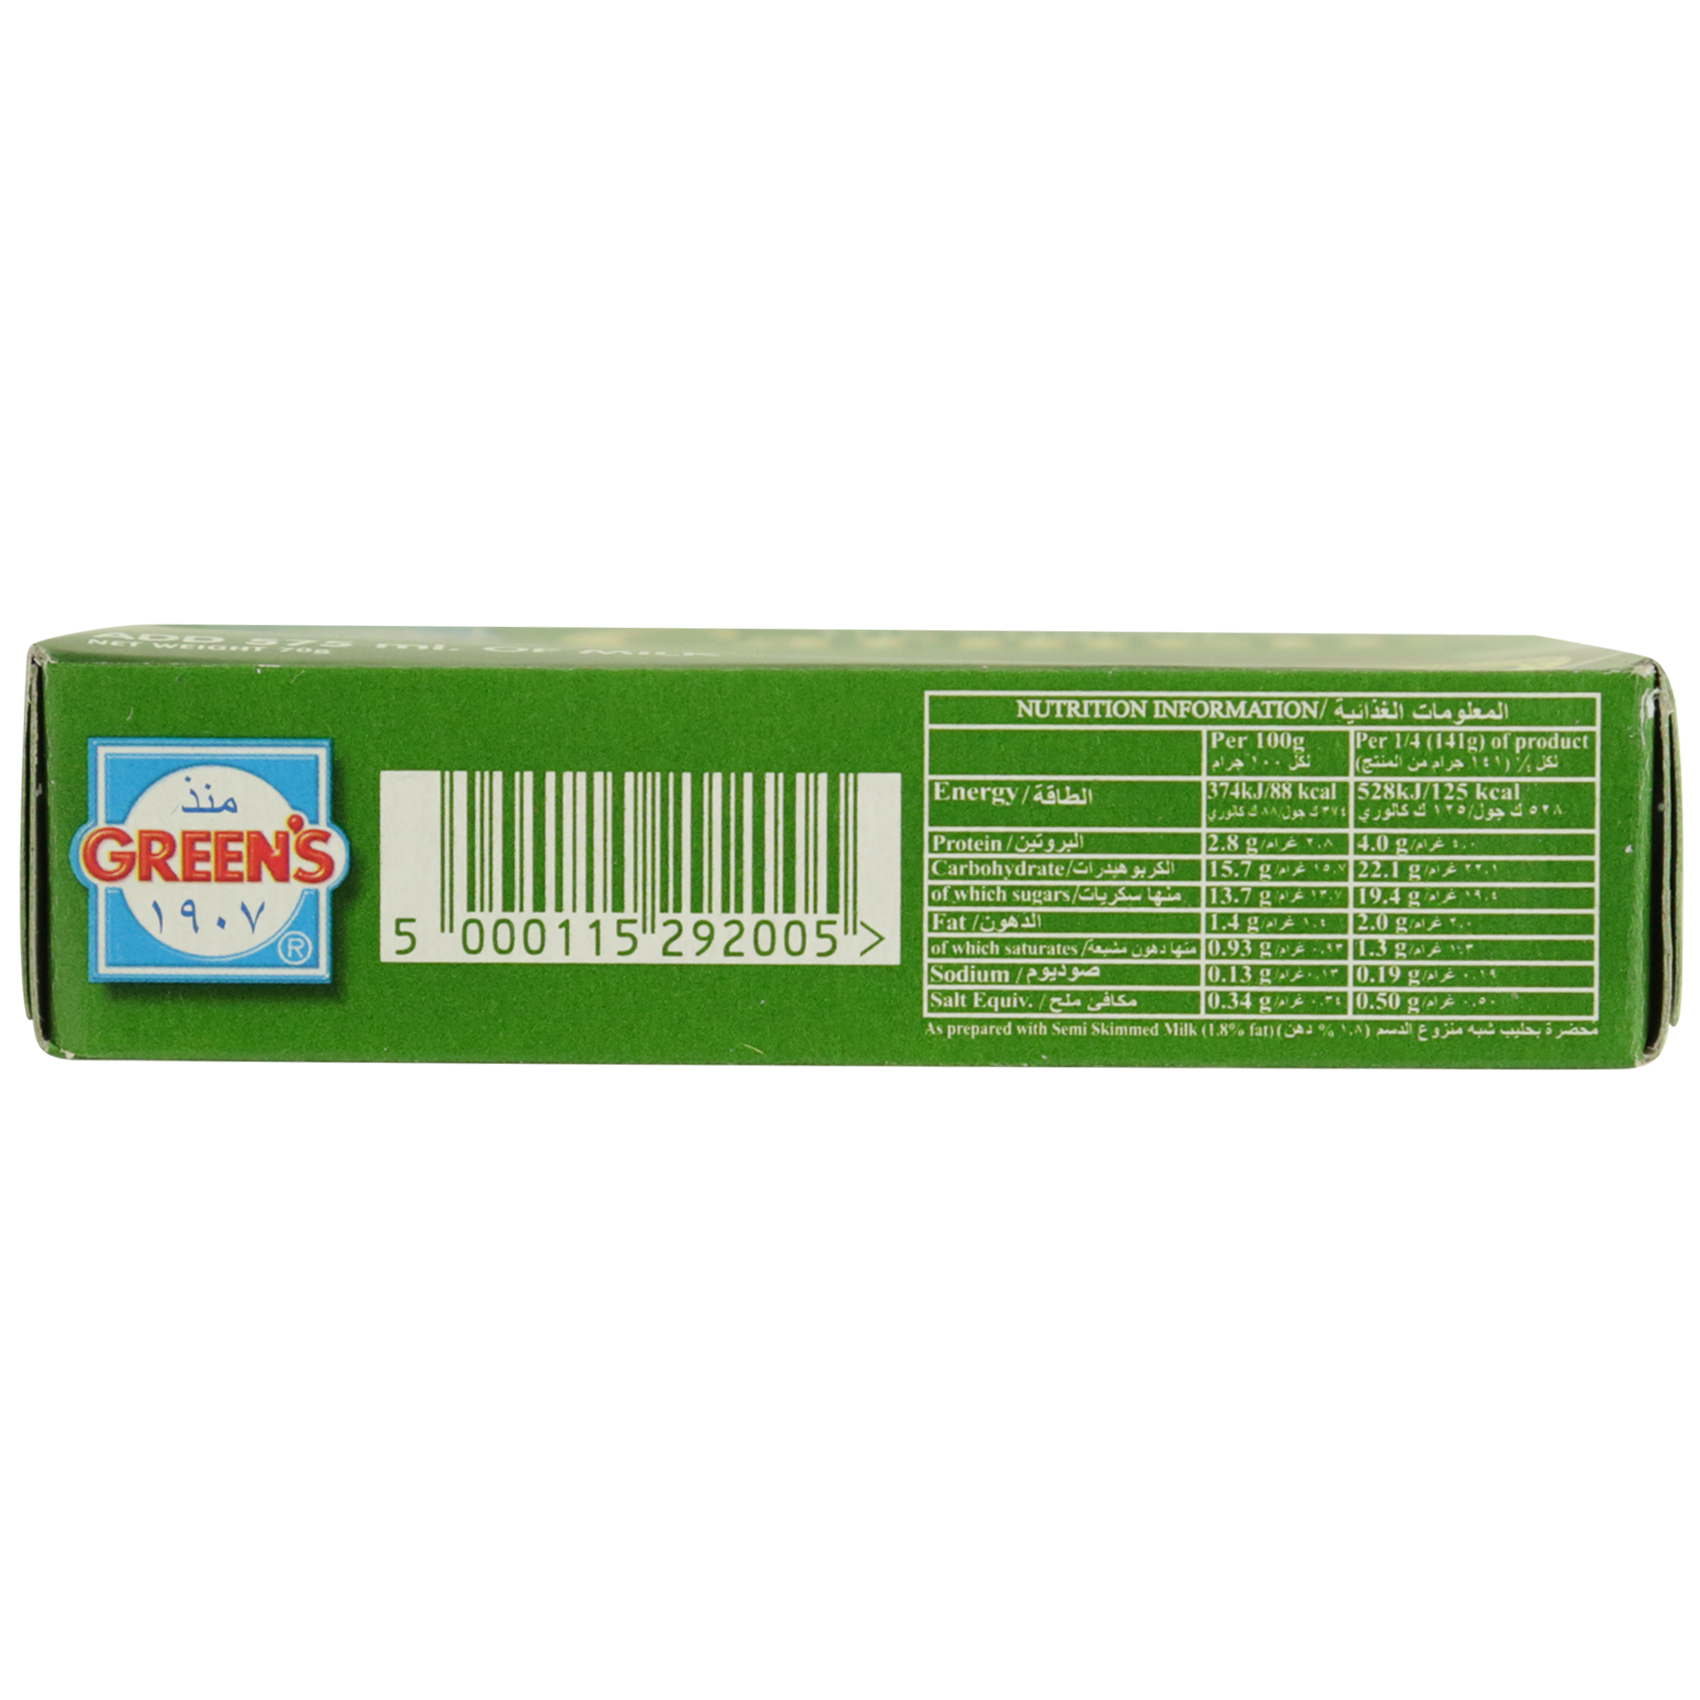 GREENS CARAMEL WITH TOPPING 70G